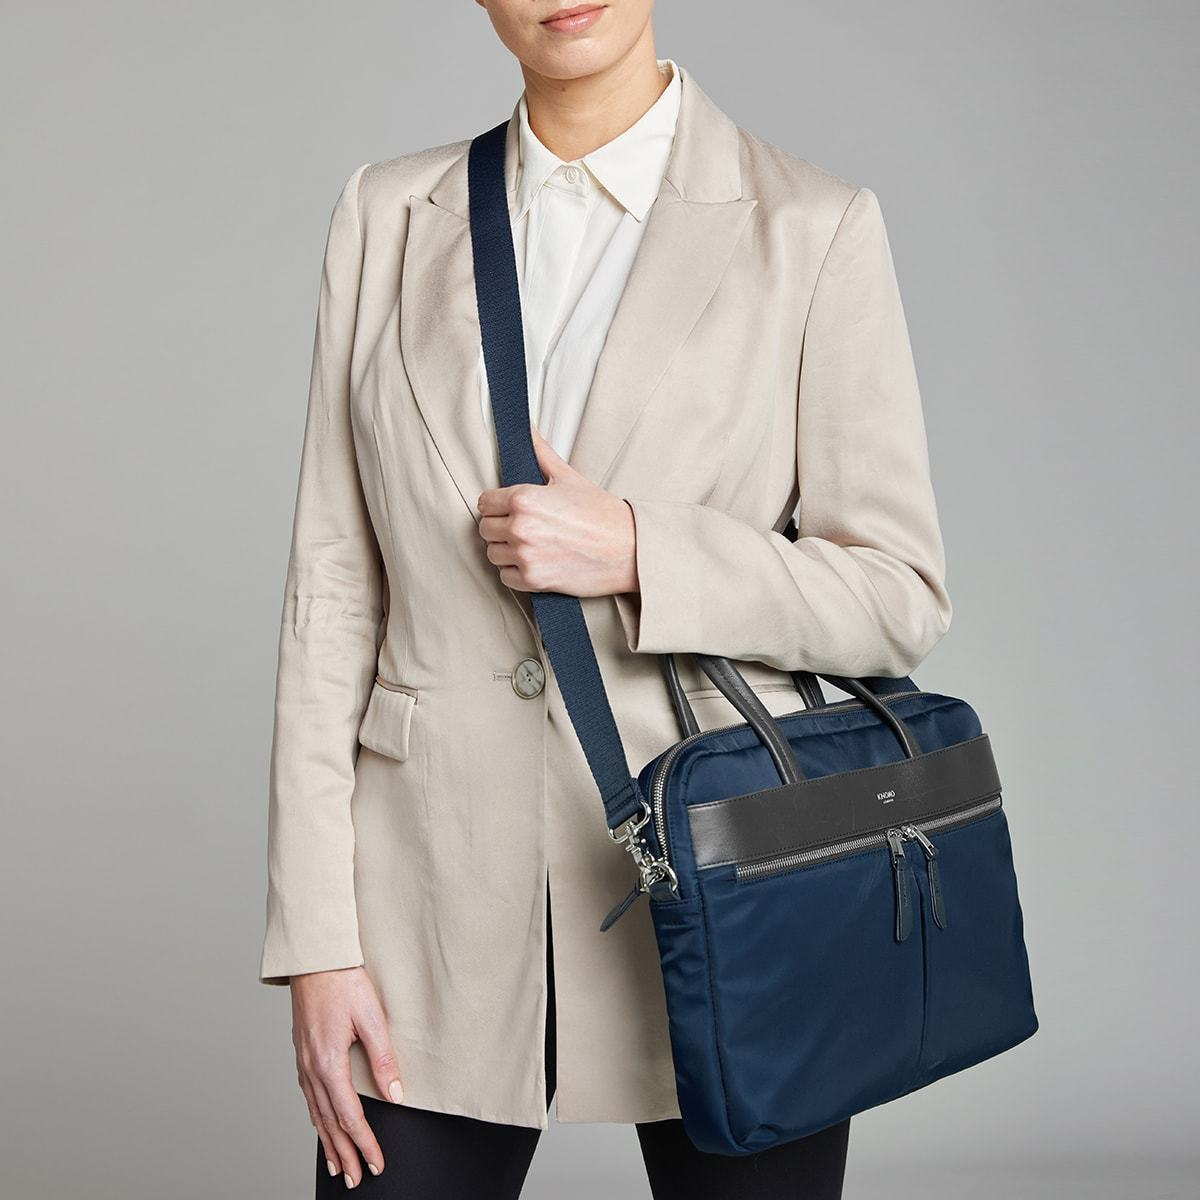 "KNOMO Hanover Laptop Briefcase Female Model Wearing 14"" -  Dark Navy Blazer 